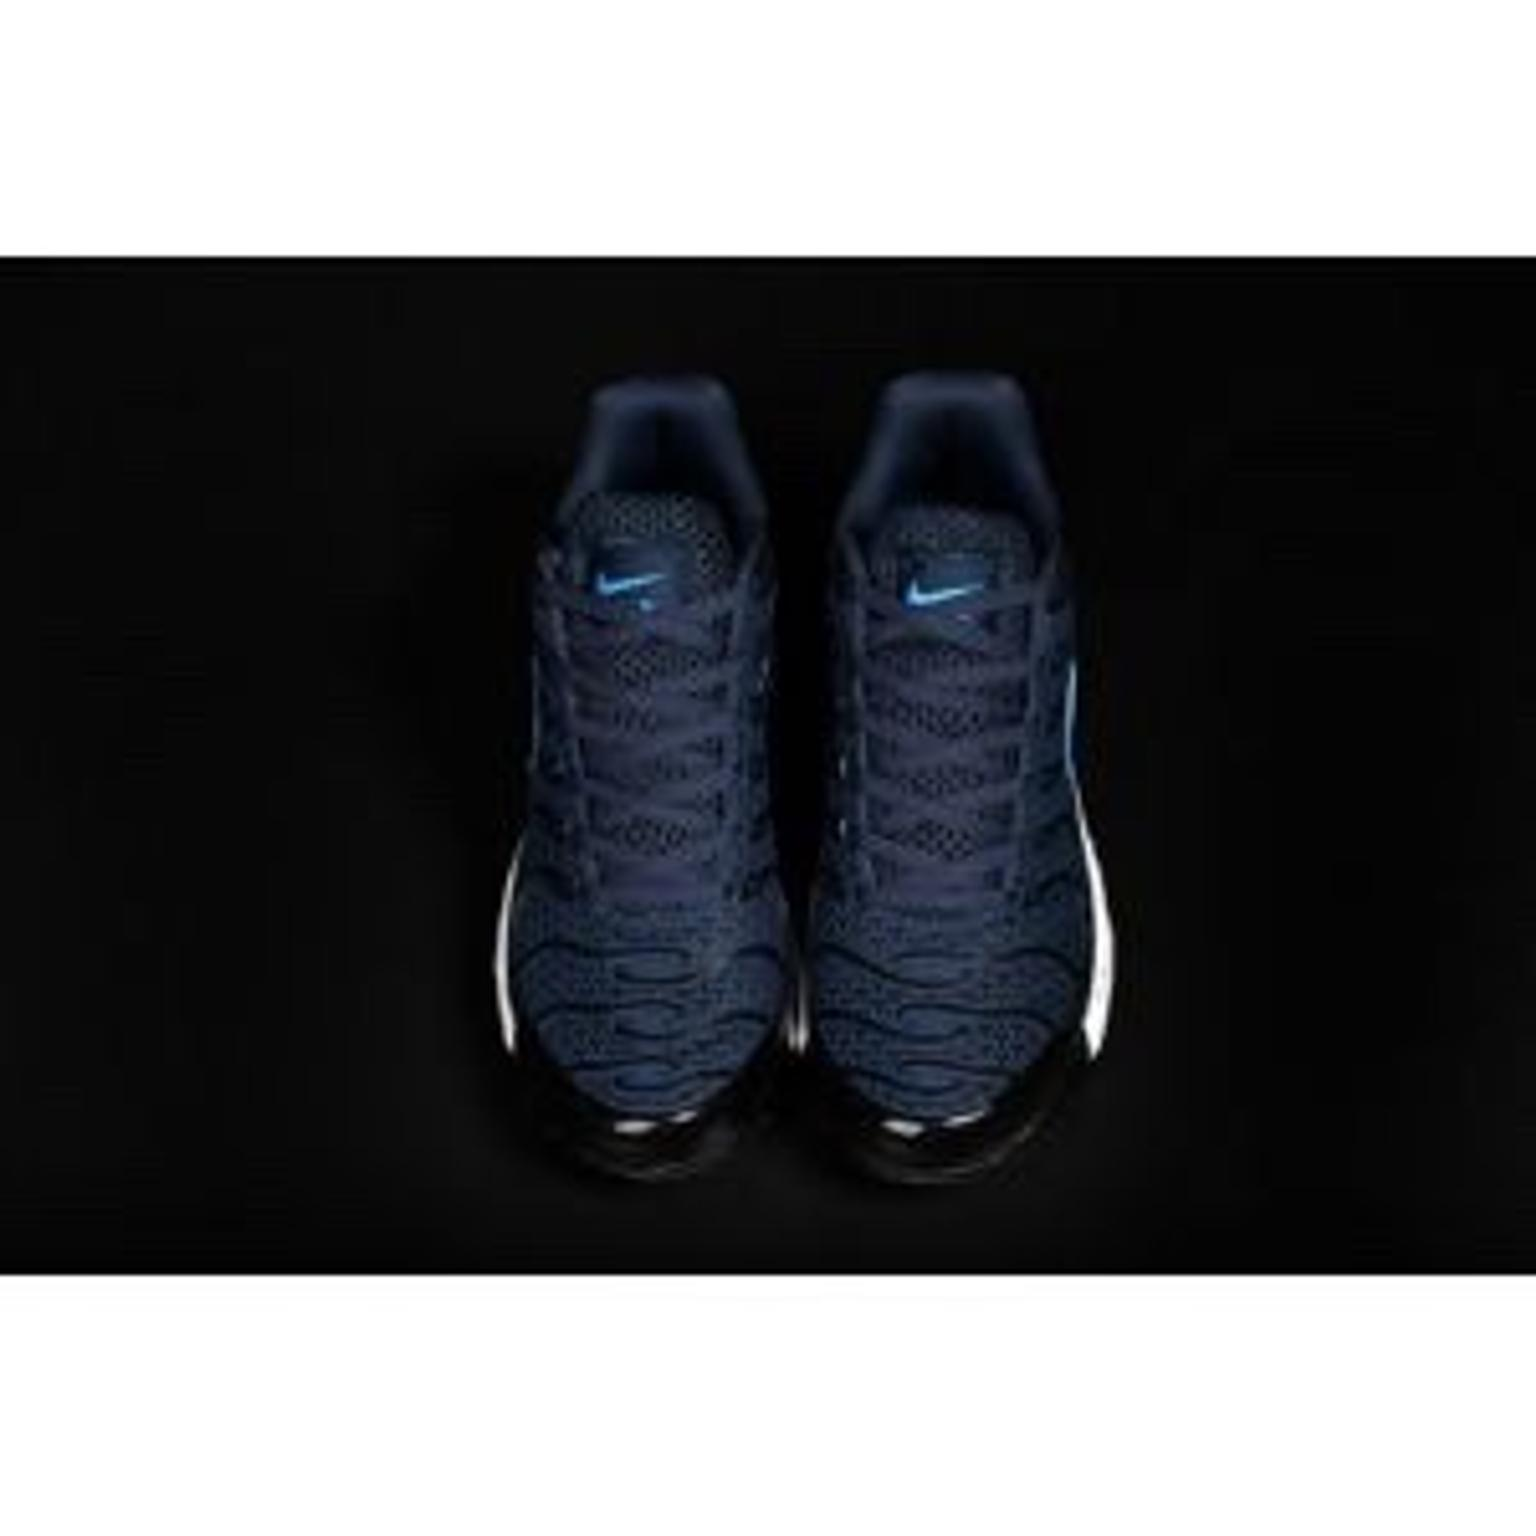 Limited edition nike Tn unisex blue size 10 in B19